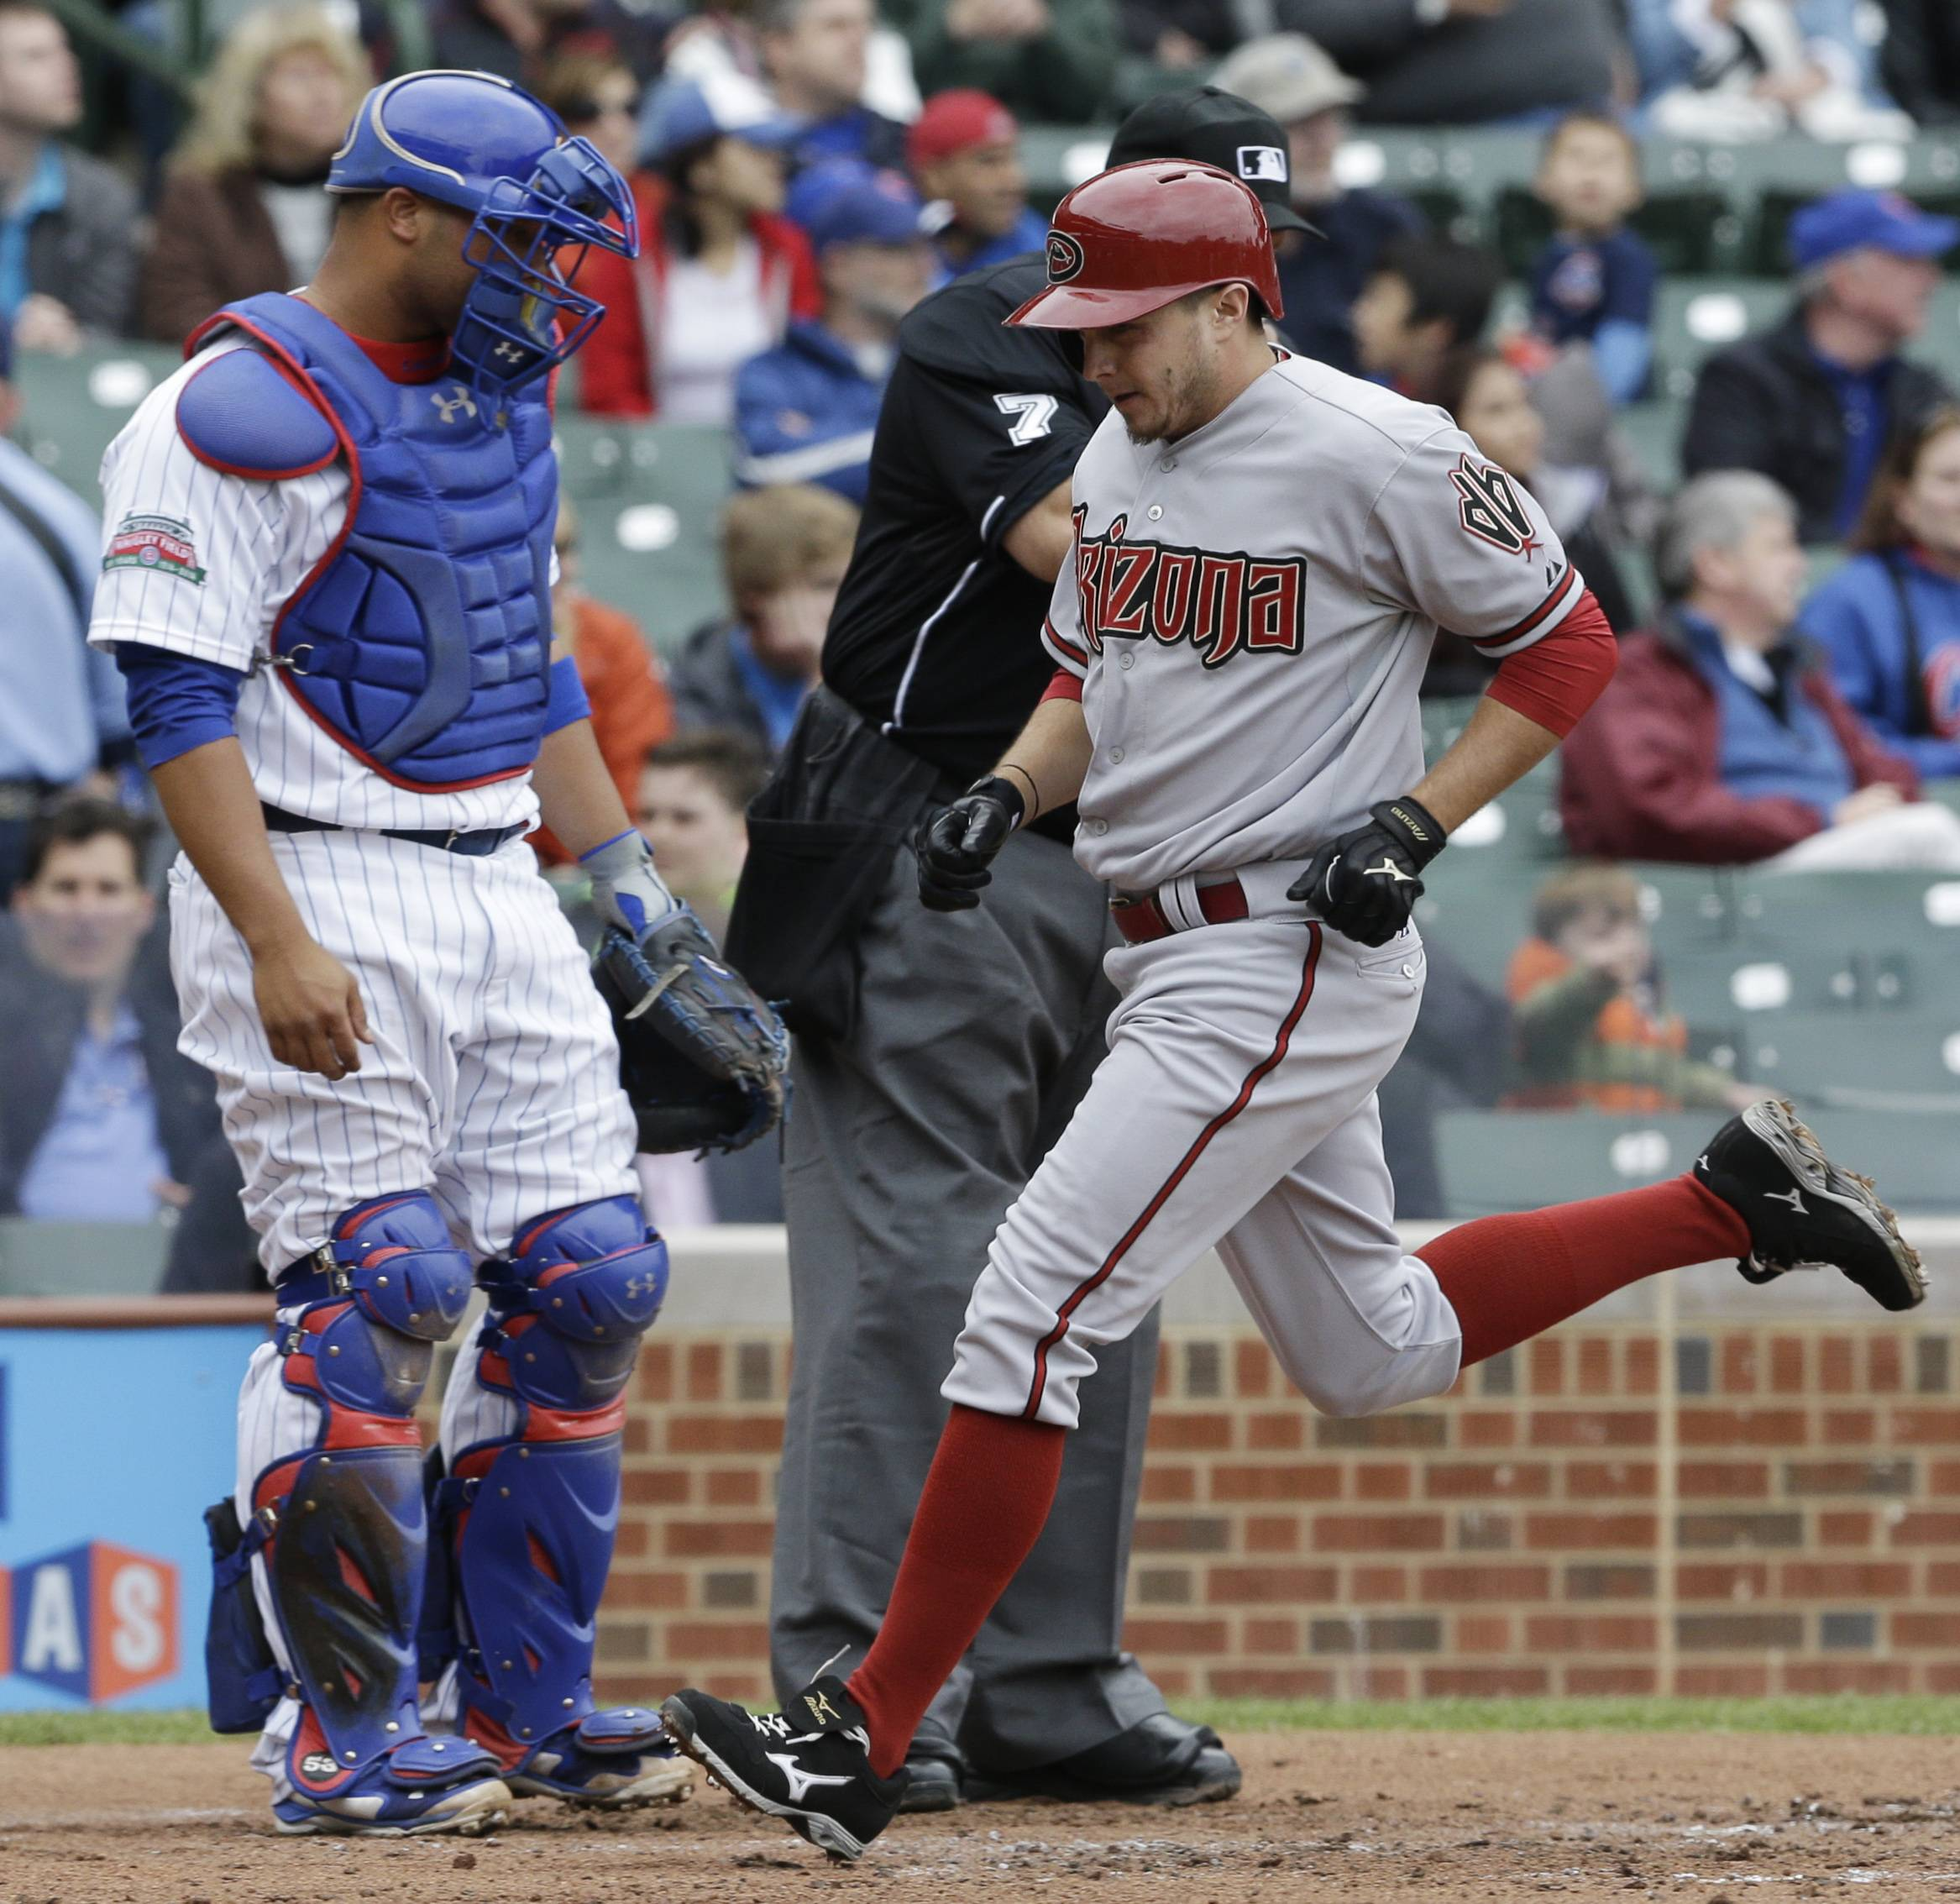 Arizona Diamondbacks' Tony Campana, right, scores on a single hit by Mike Bolsinger as Chicago Cubs catcher Welington Castillo looks down during the second inning of a baseball game in Chicago, Thursday, April 24, 2014.